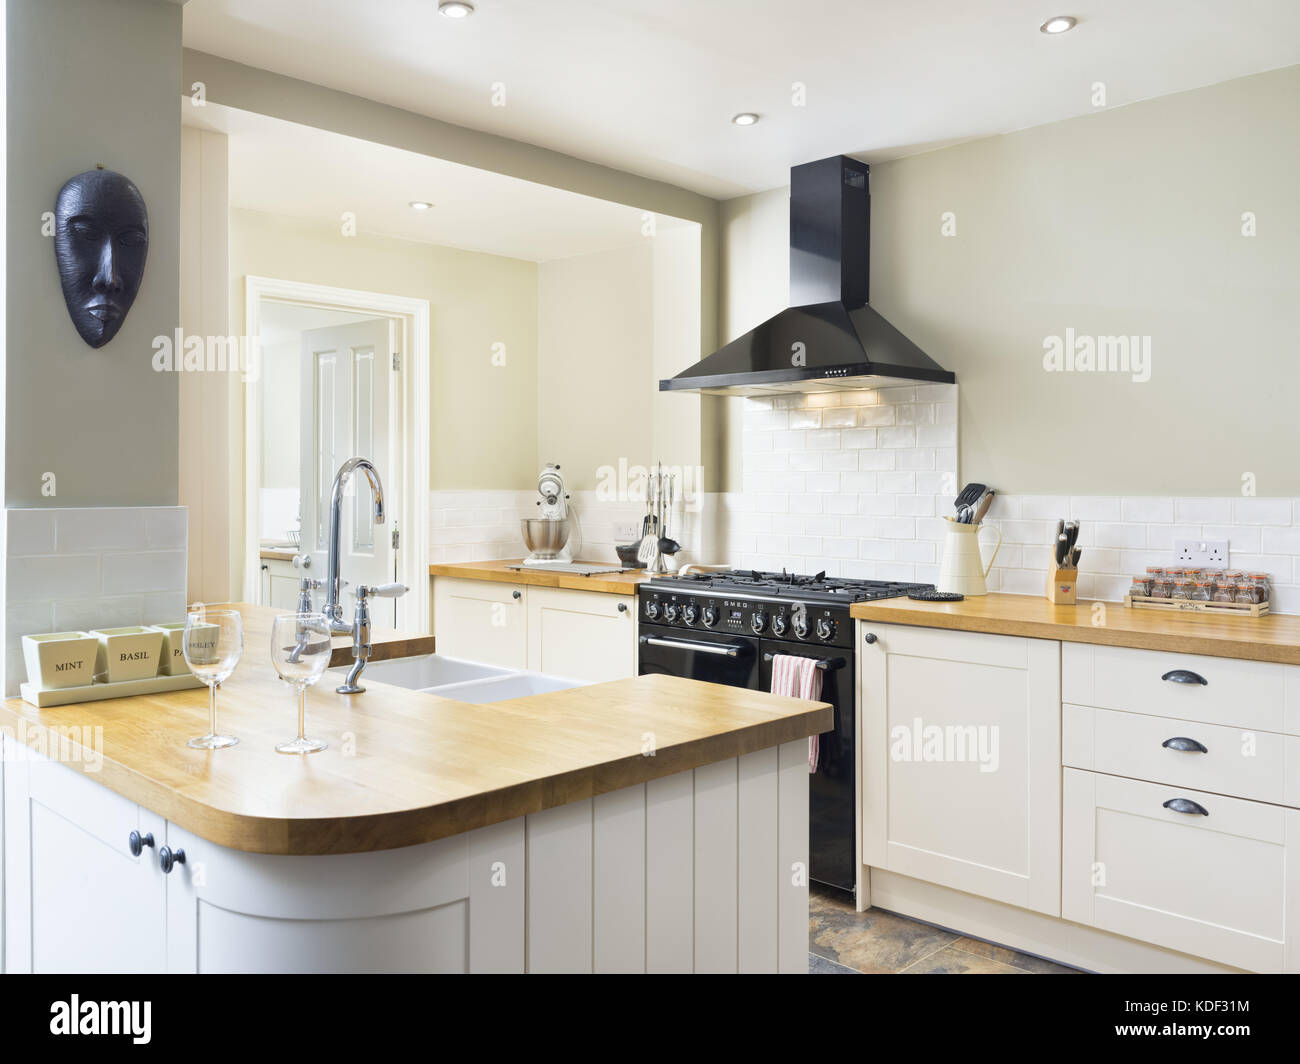 A New Modern Cream Shaker Style Designer Kitchen Showing Cabinets Stock Photo Alamy